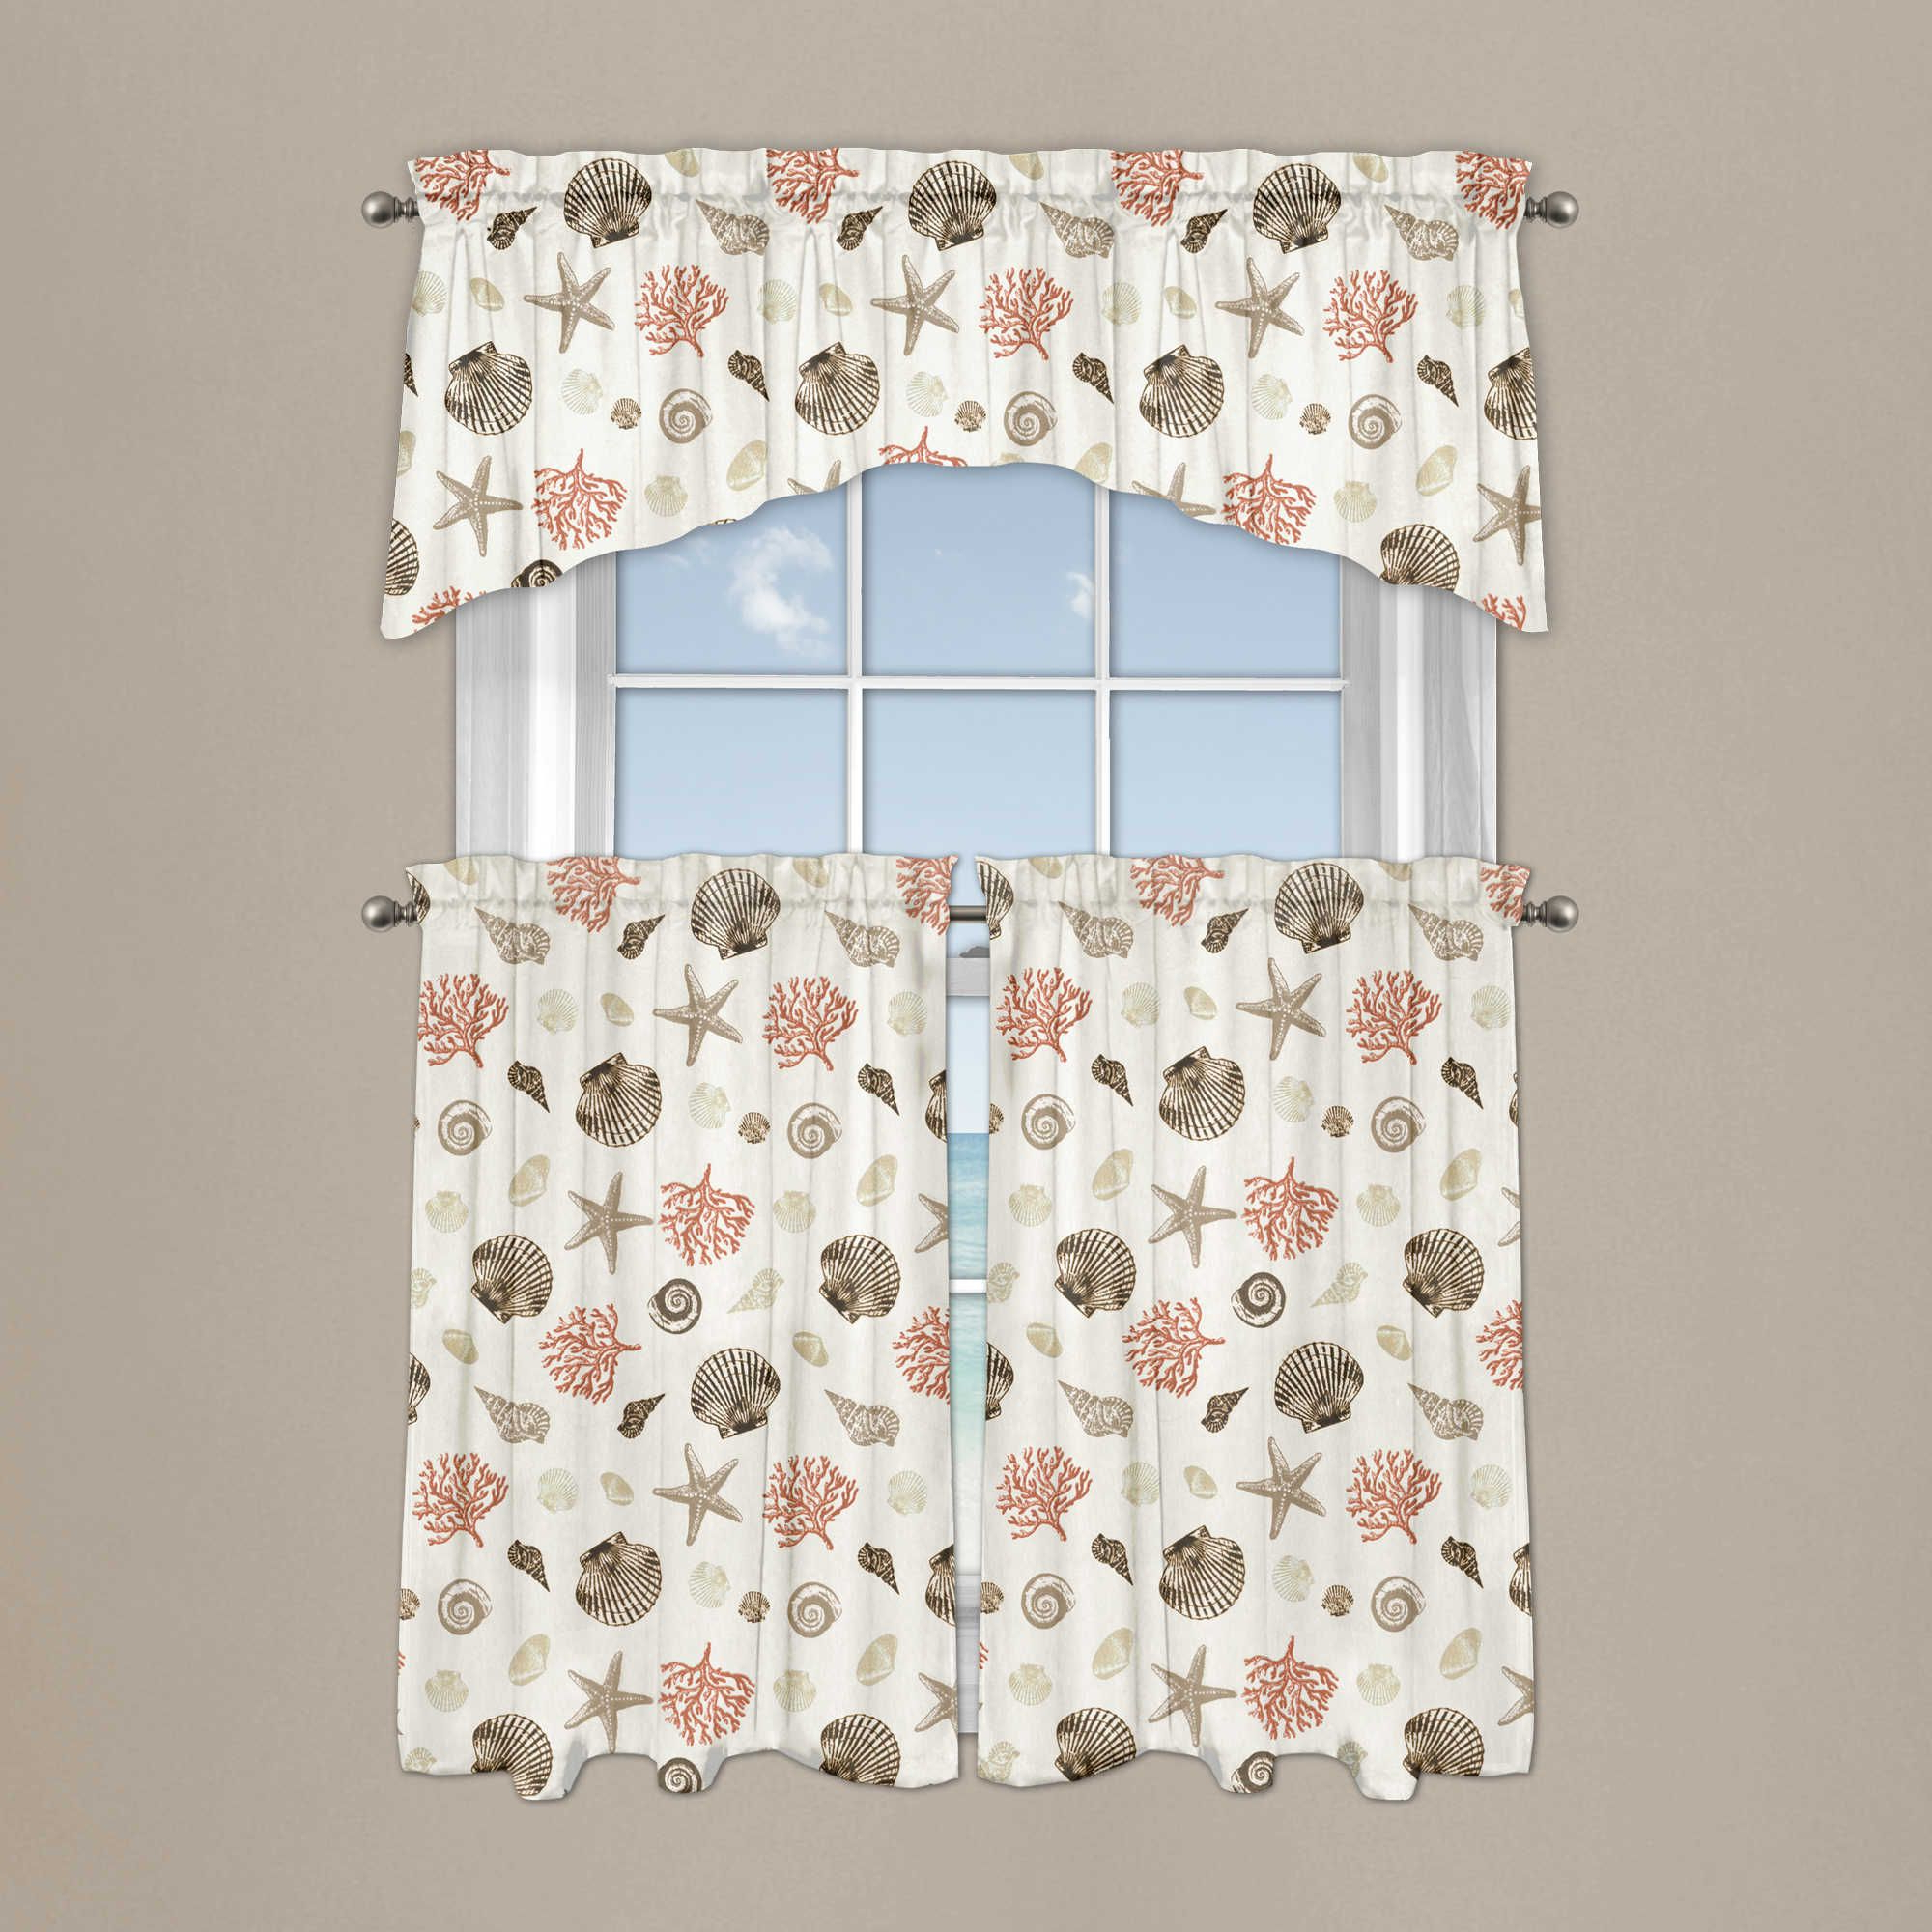 2020 Coastal Tier And Valance Window Curtain Sets For Seashore Coral Window Curtain Tier Pair And Valance (View 17 of 20)